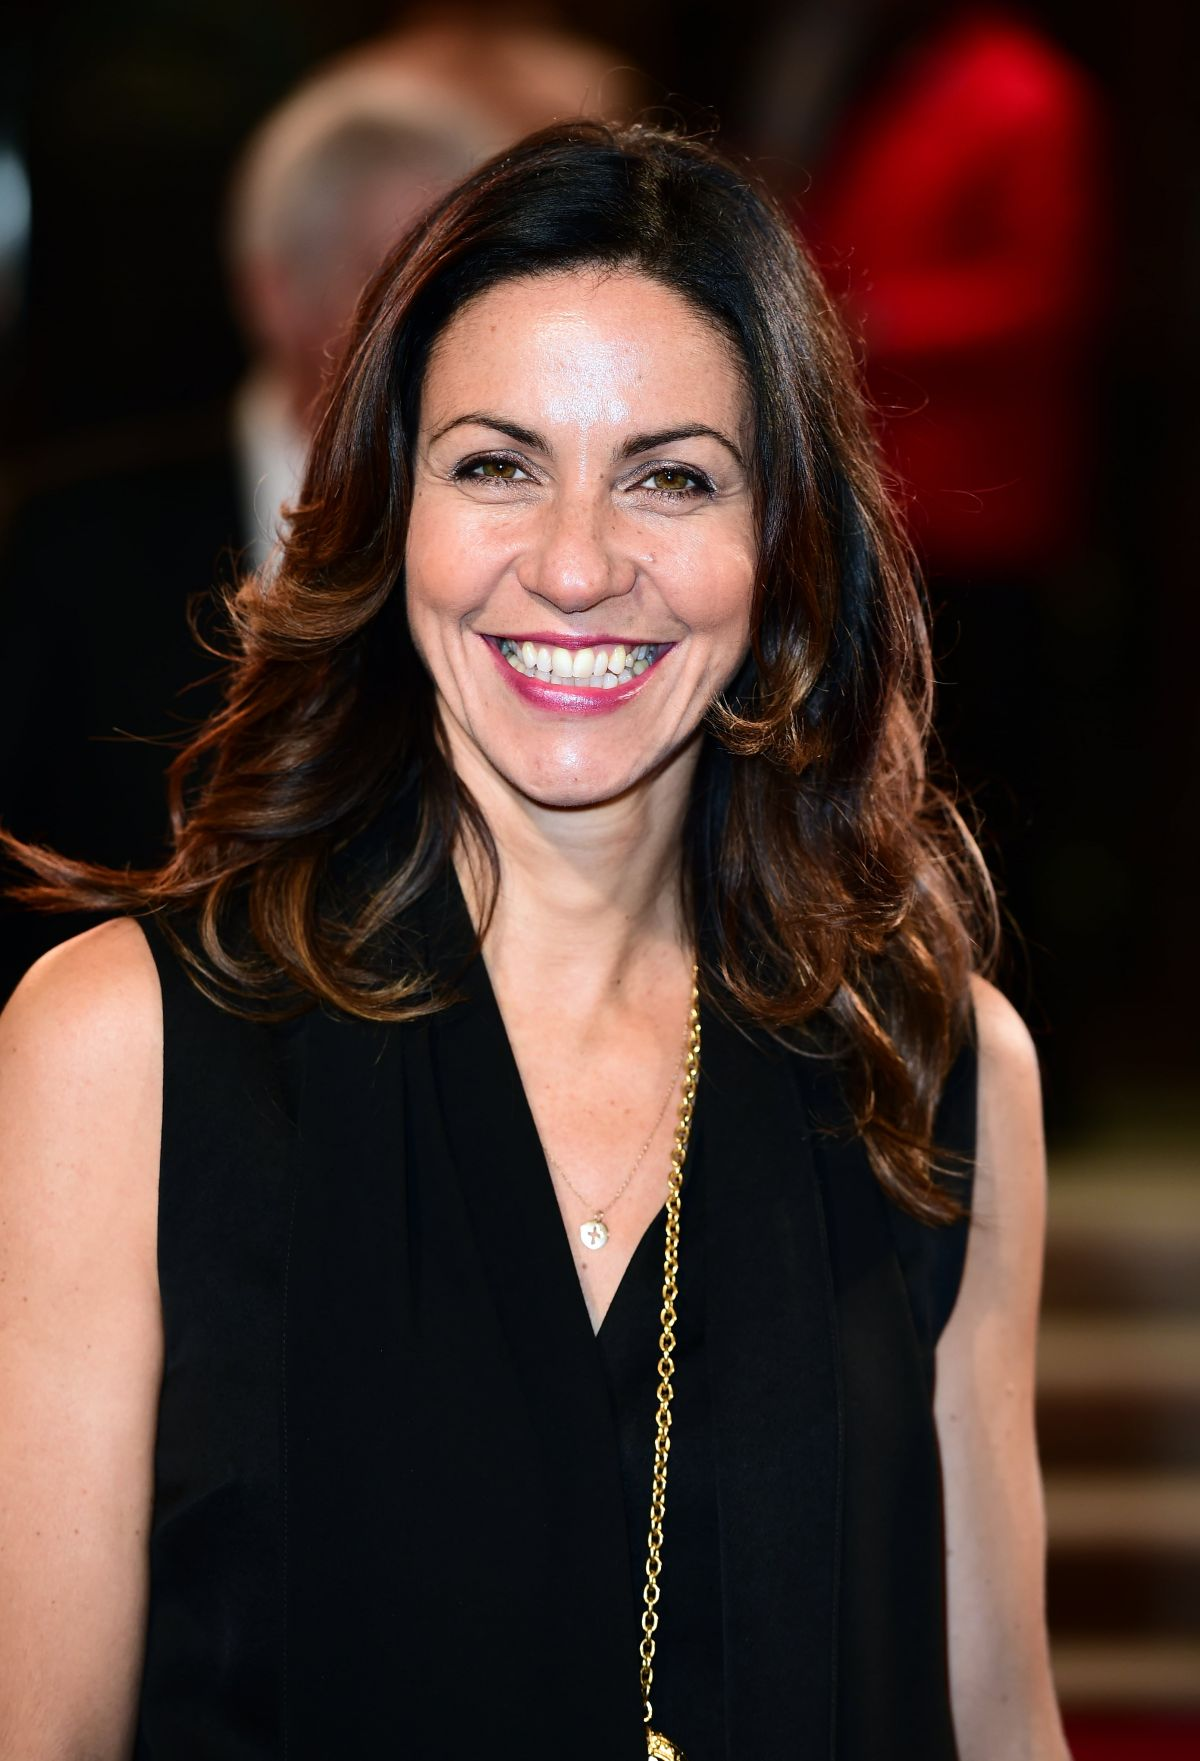 JULIA BRADBURY at ITV 60th Anniversary Gala in London 11/19/2015